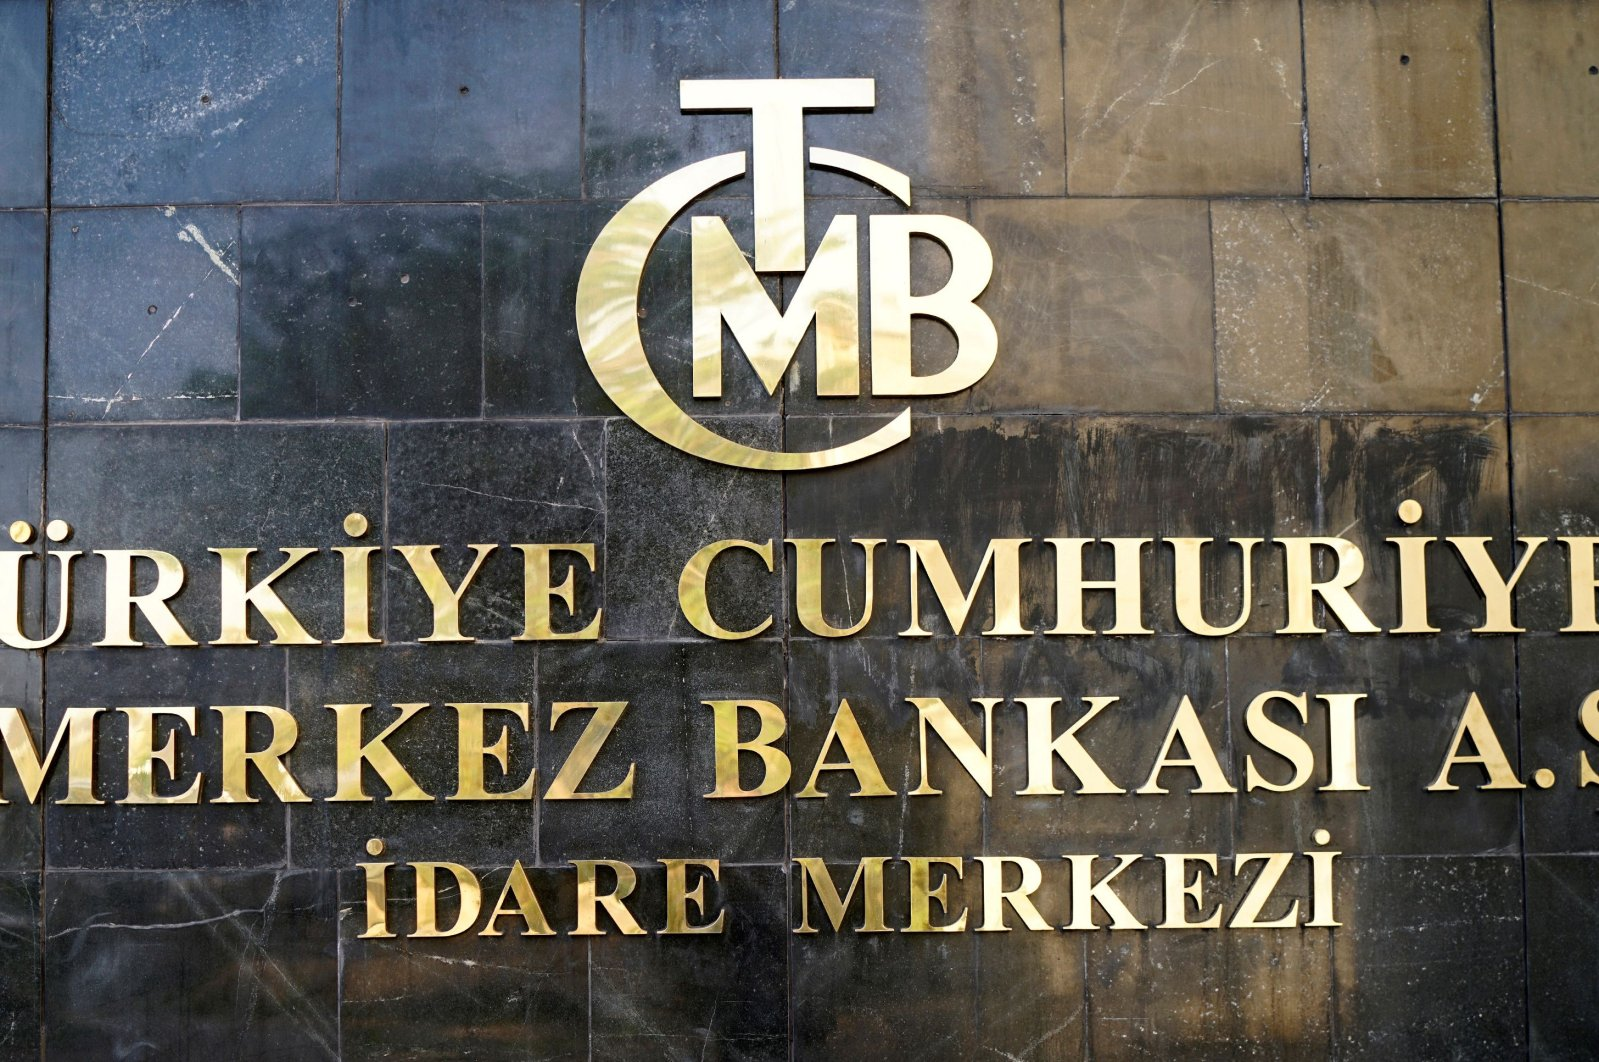 The logo of the Central Bank of the Republic of Turkey (CBRT) at the entrance of the bank's headquarters in Ankara, Turkey, April 19, 2015. (Reuters Photo)